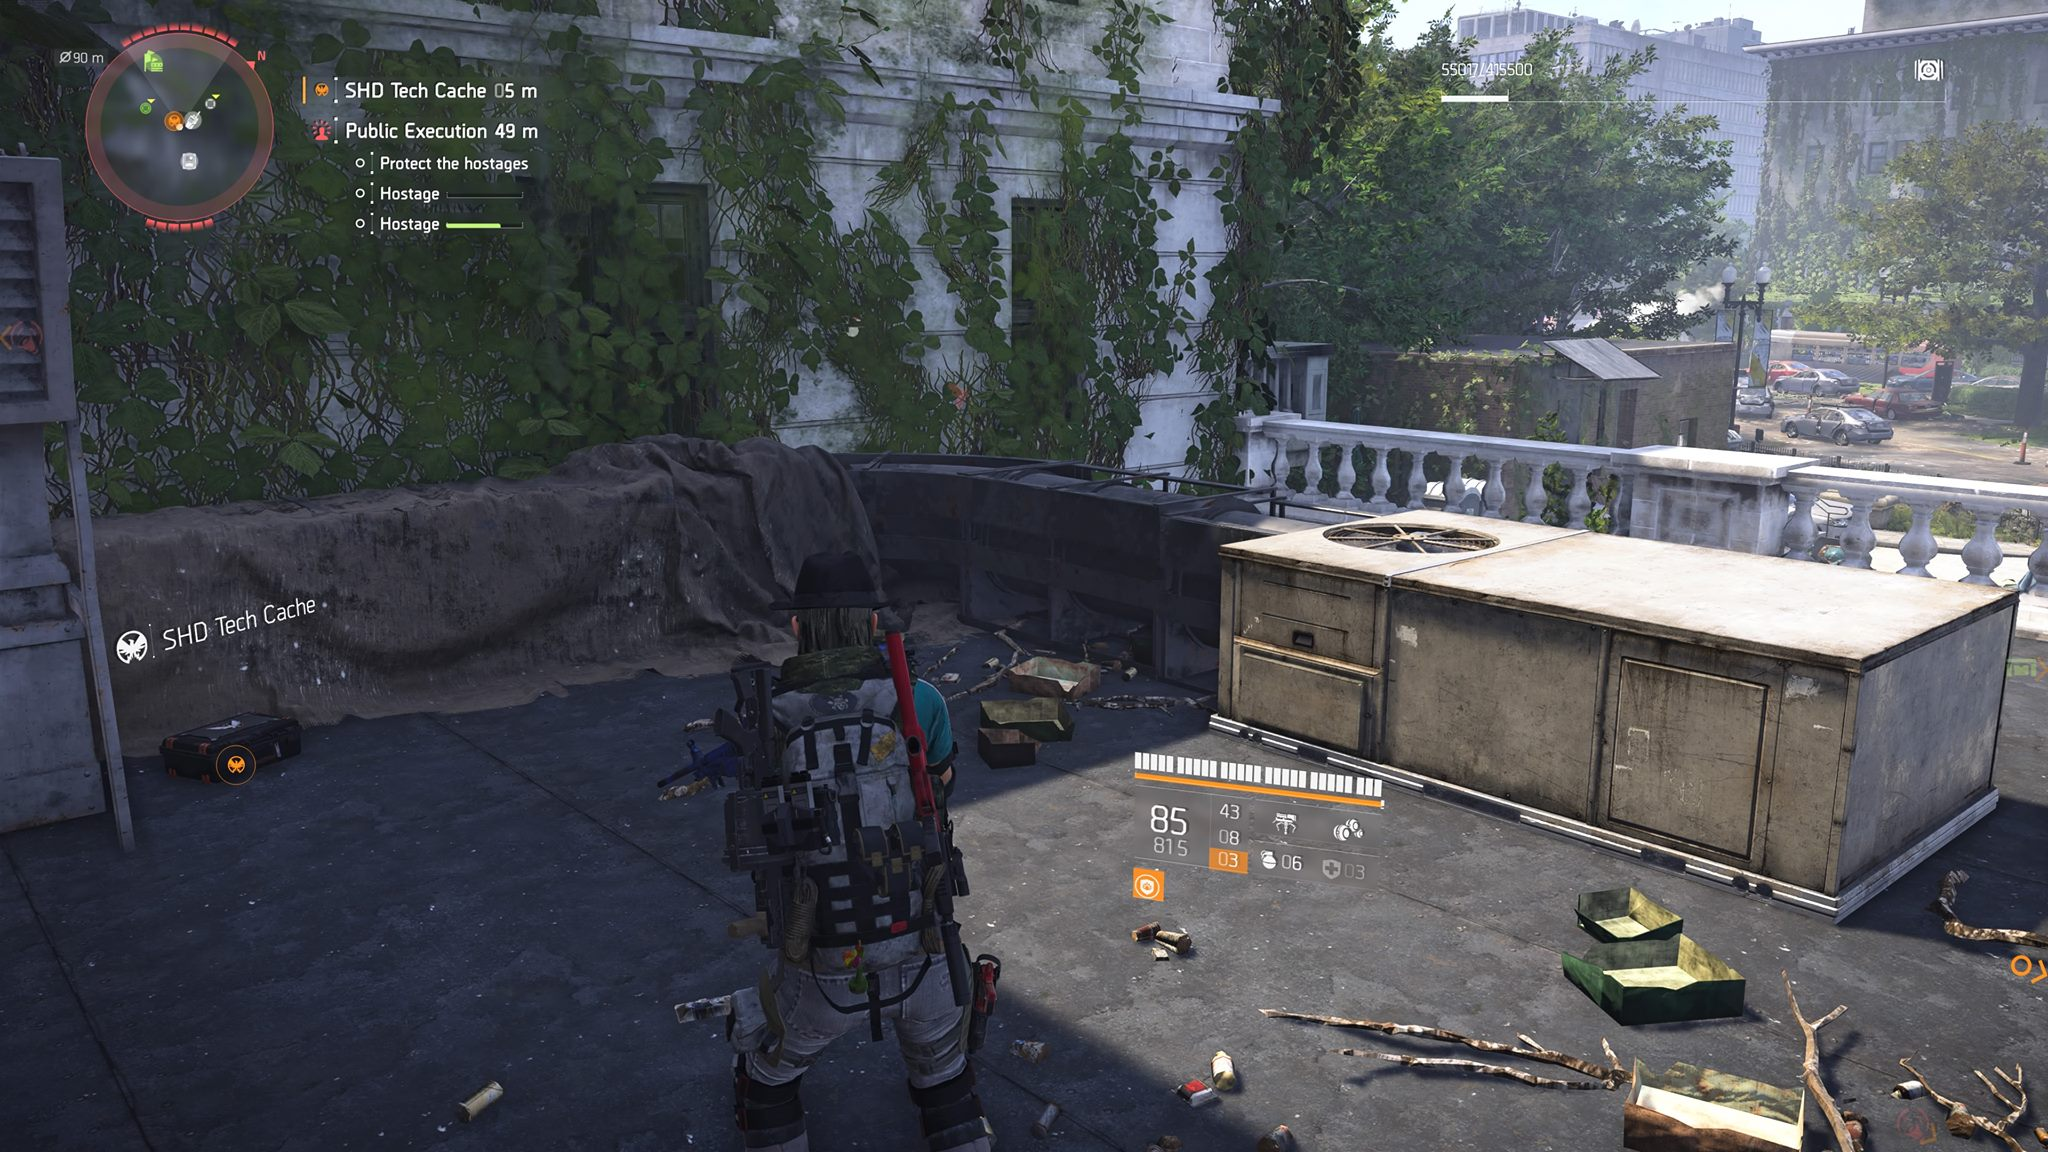 Constitution Hall SHD Tech Caches | Division 2 | Locations